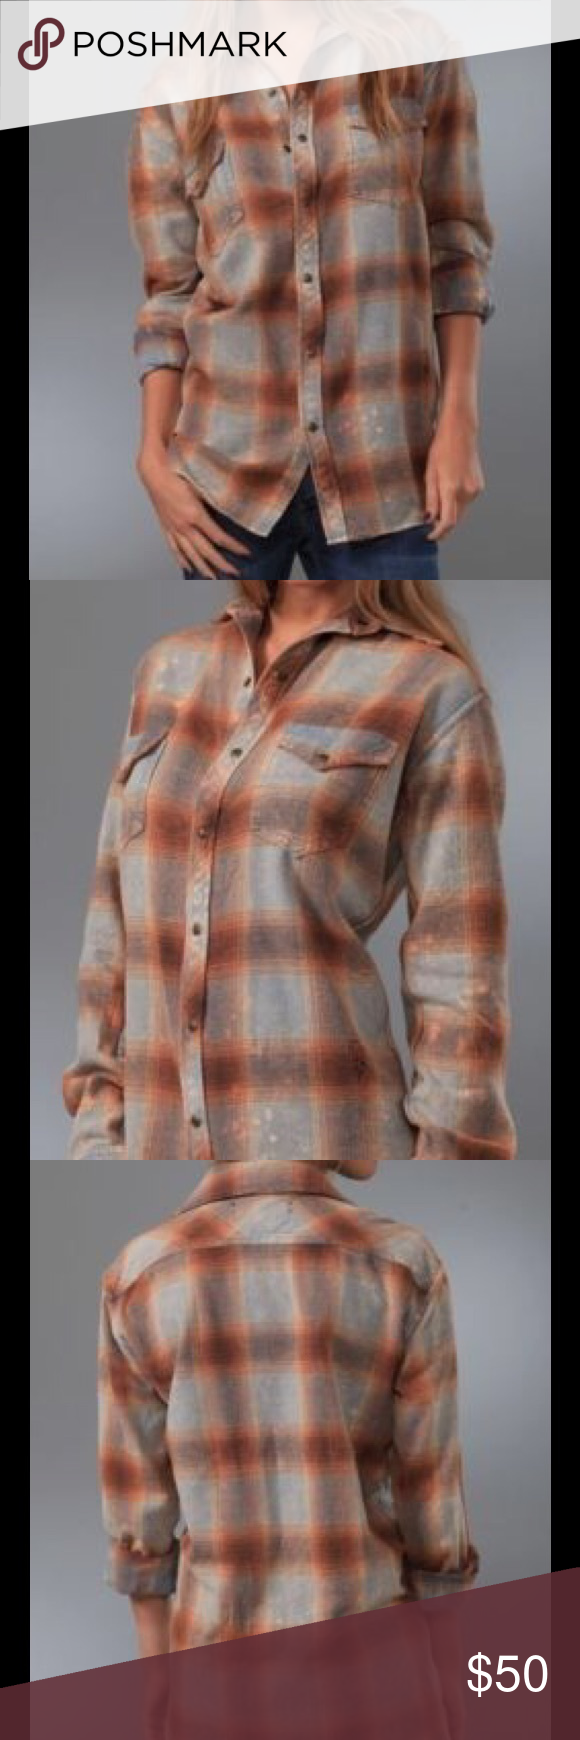 Flannel shirt xs  TEXTILE Elizabeth and James Blake Plaid Shirt XS Gently used Textile